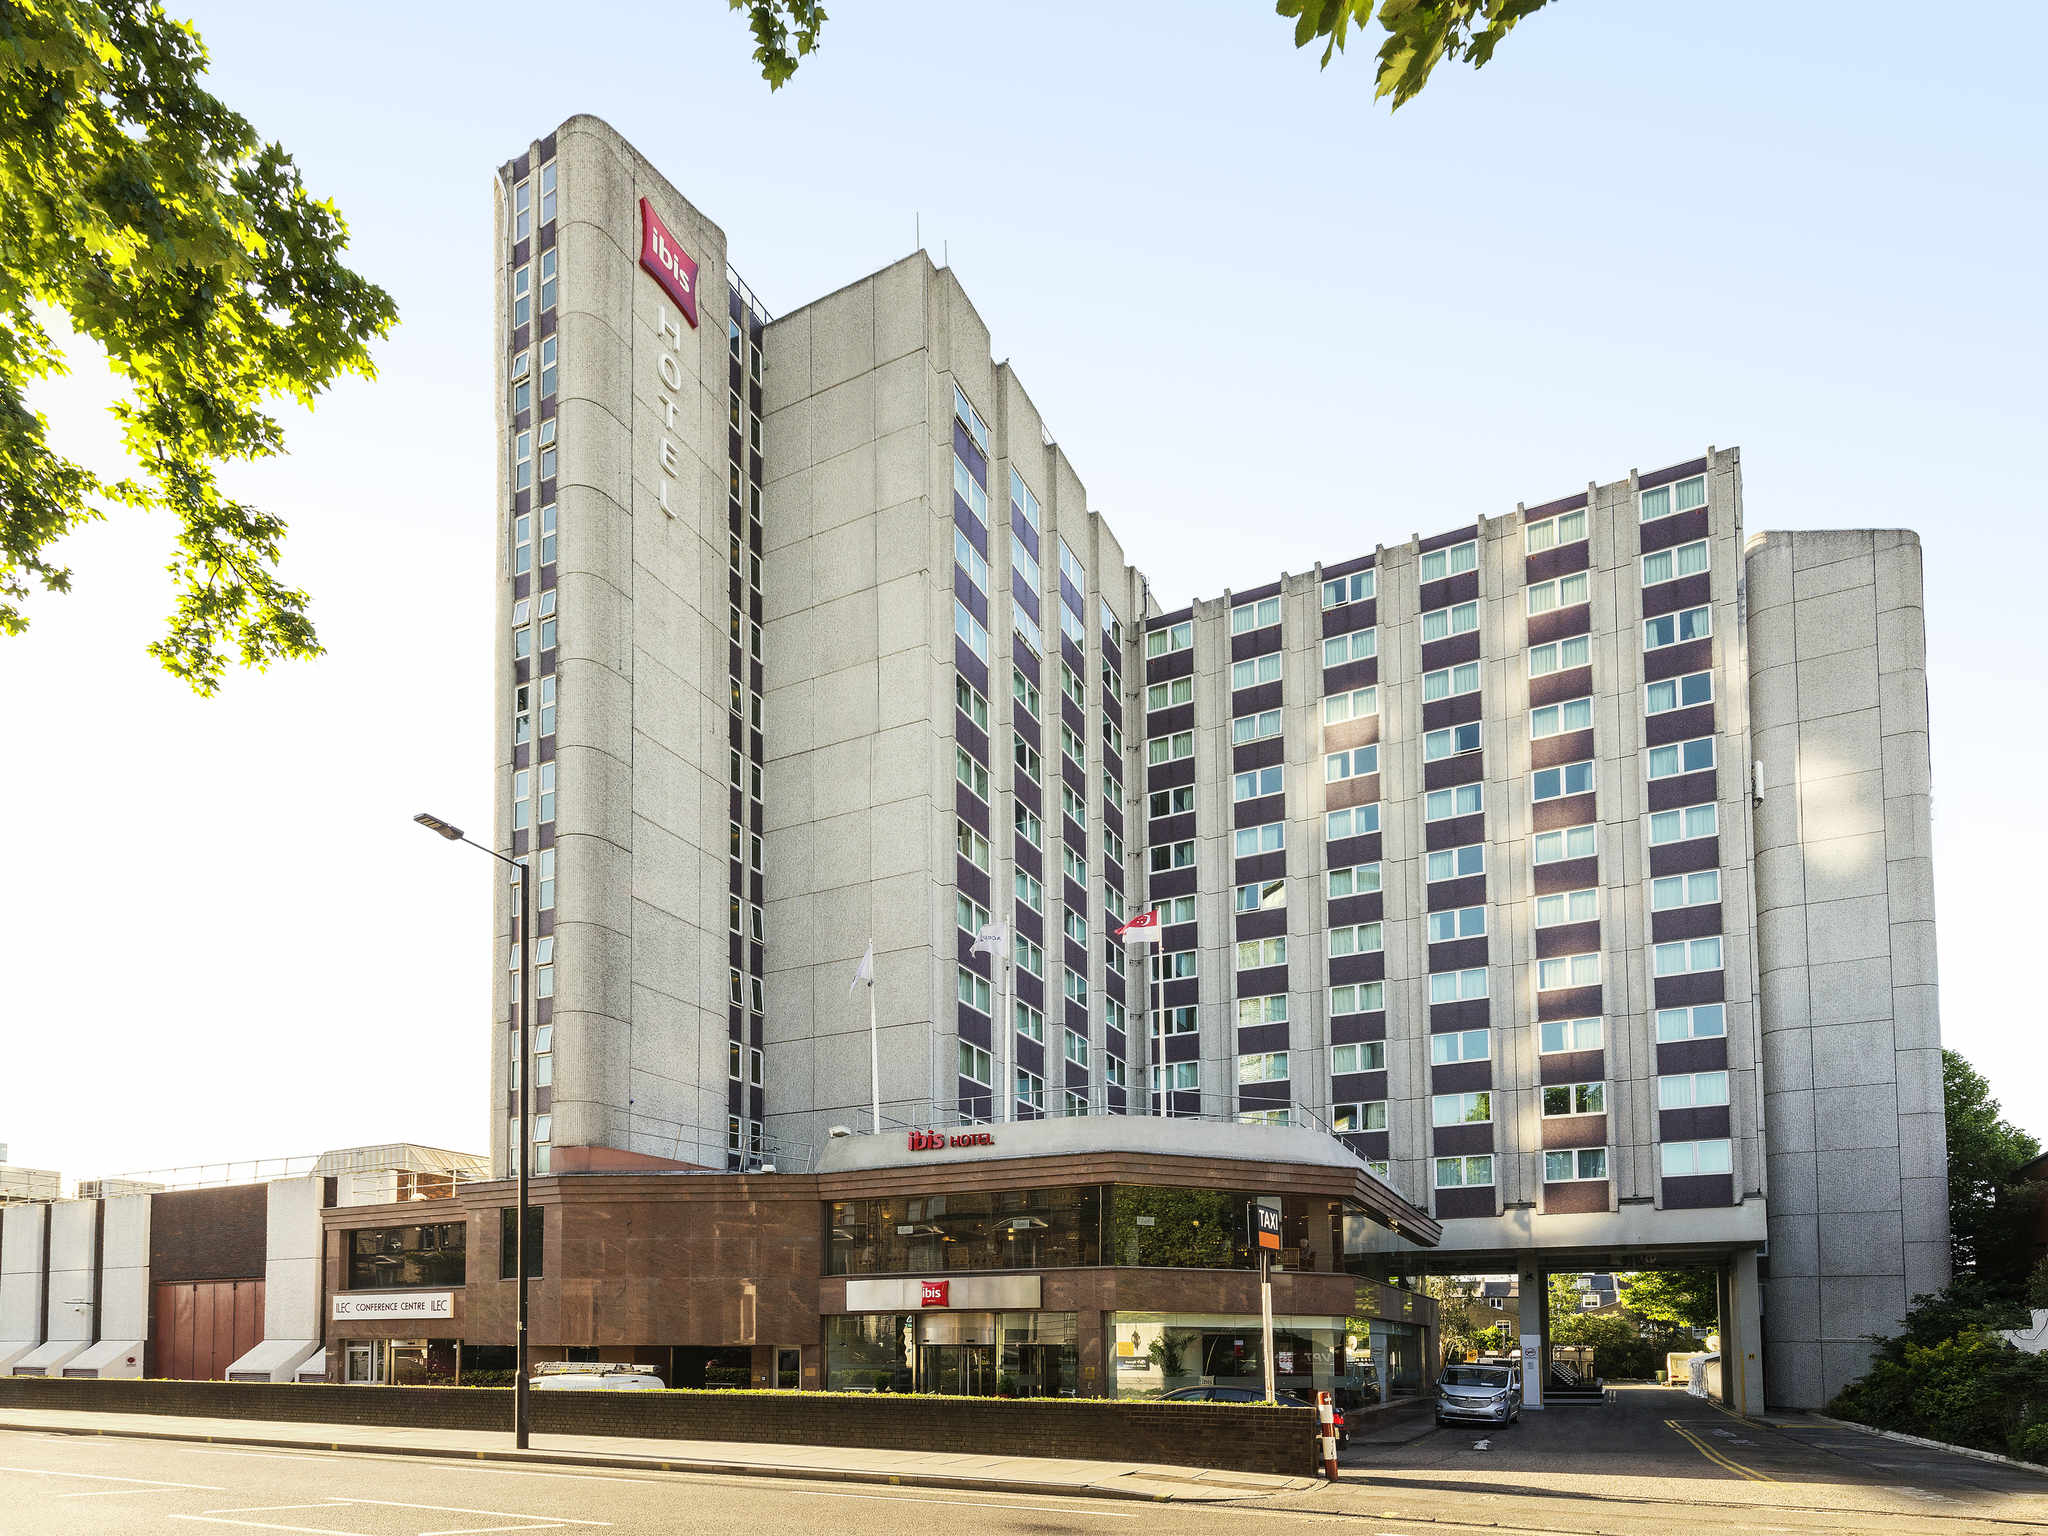 Hotel – ibis Londra Earls Court